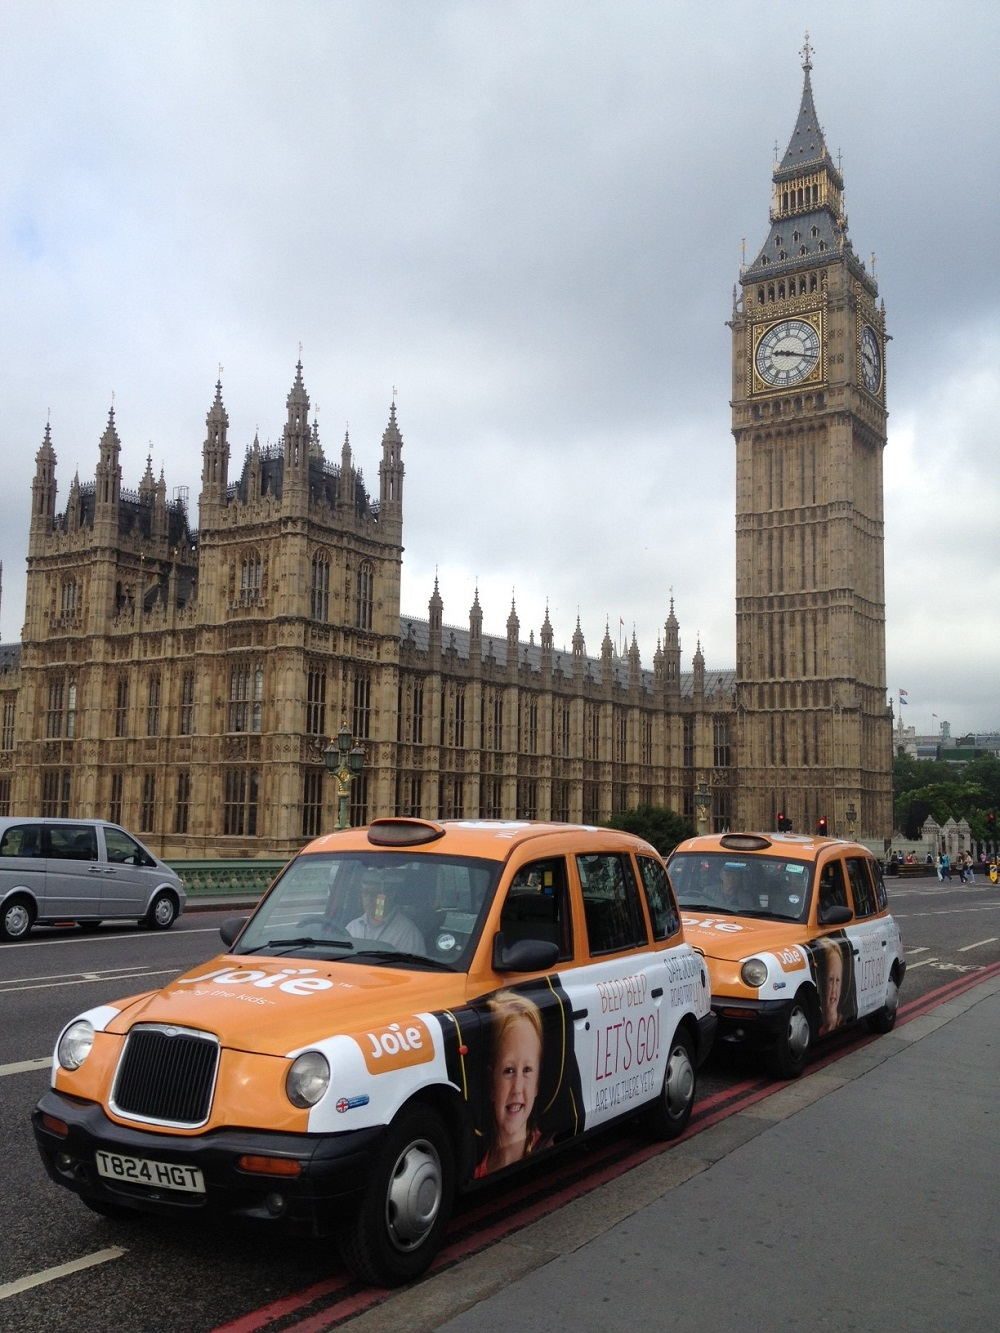 Joie Baby - London - Livery